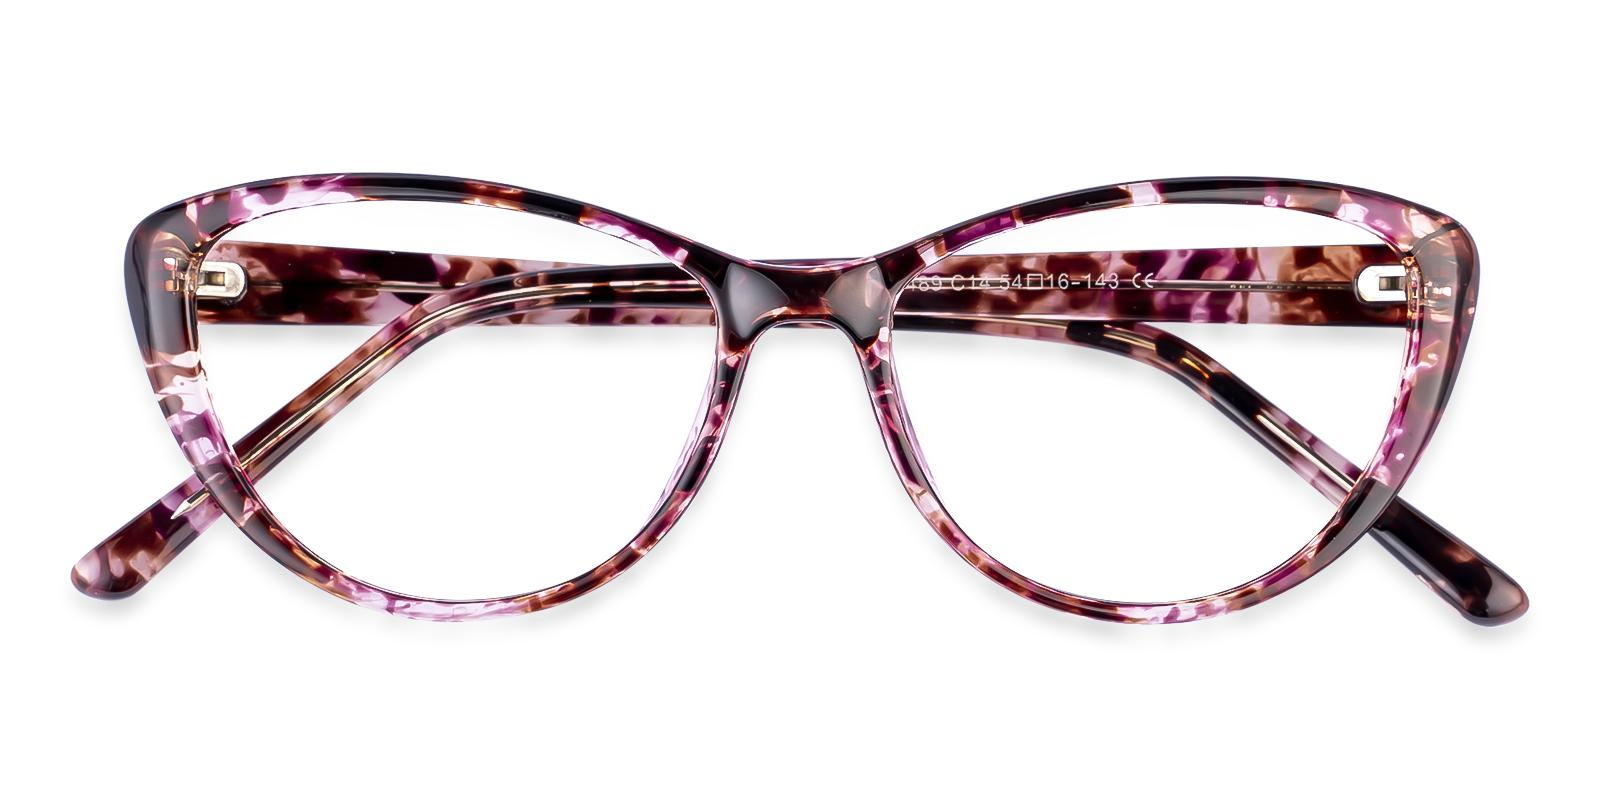 Memento Pattern Acetate Eyeglasses , UniversalBridgeFit Frames from ABBE Glasses